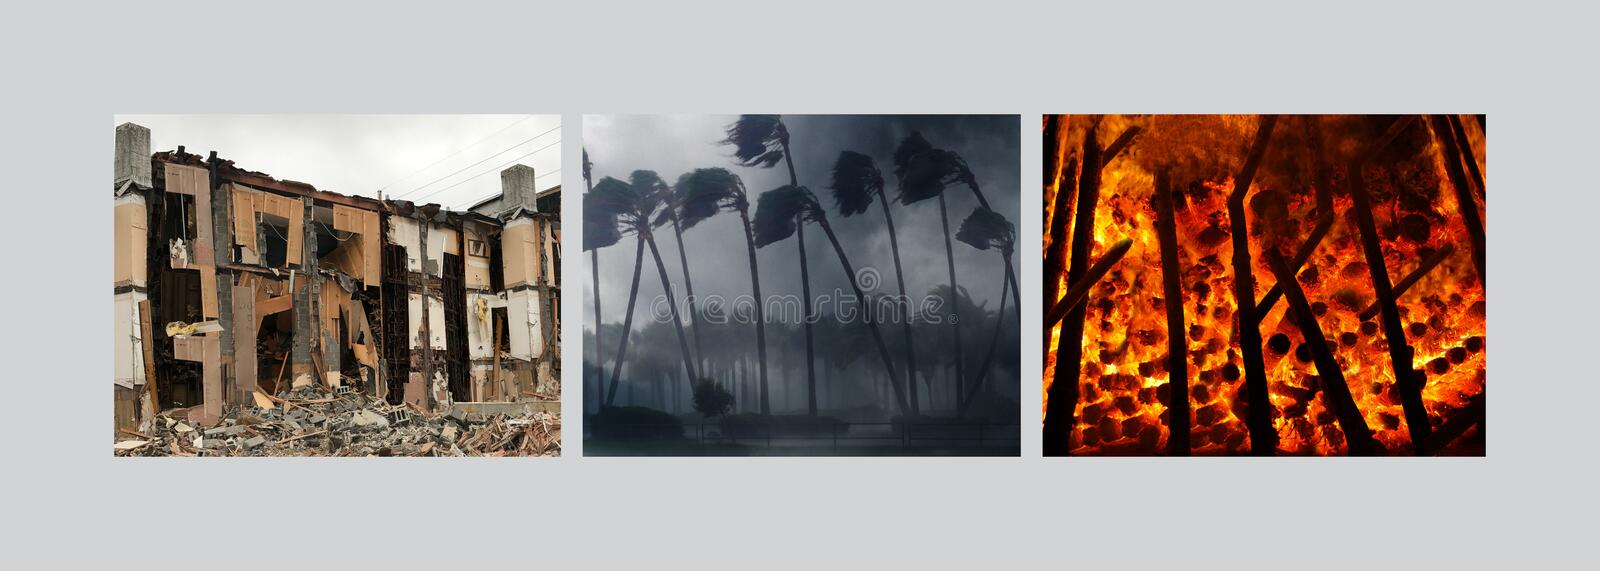 THE AMERICAS, 12 October 2017. After earthquakes and hurricanes, the americas are struck by devastating fires. royalty free stock photo